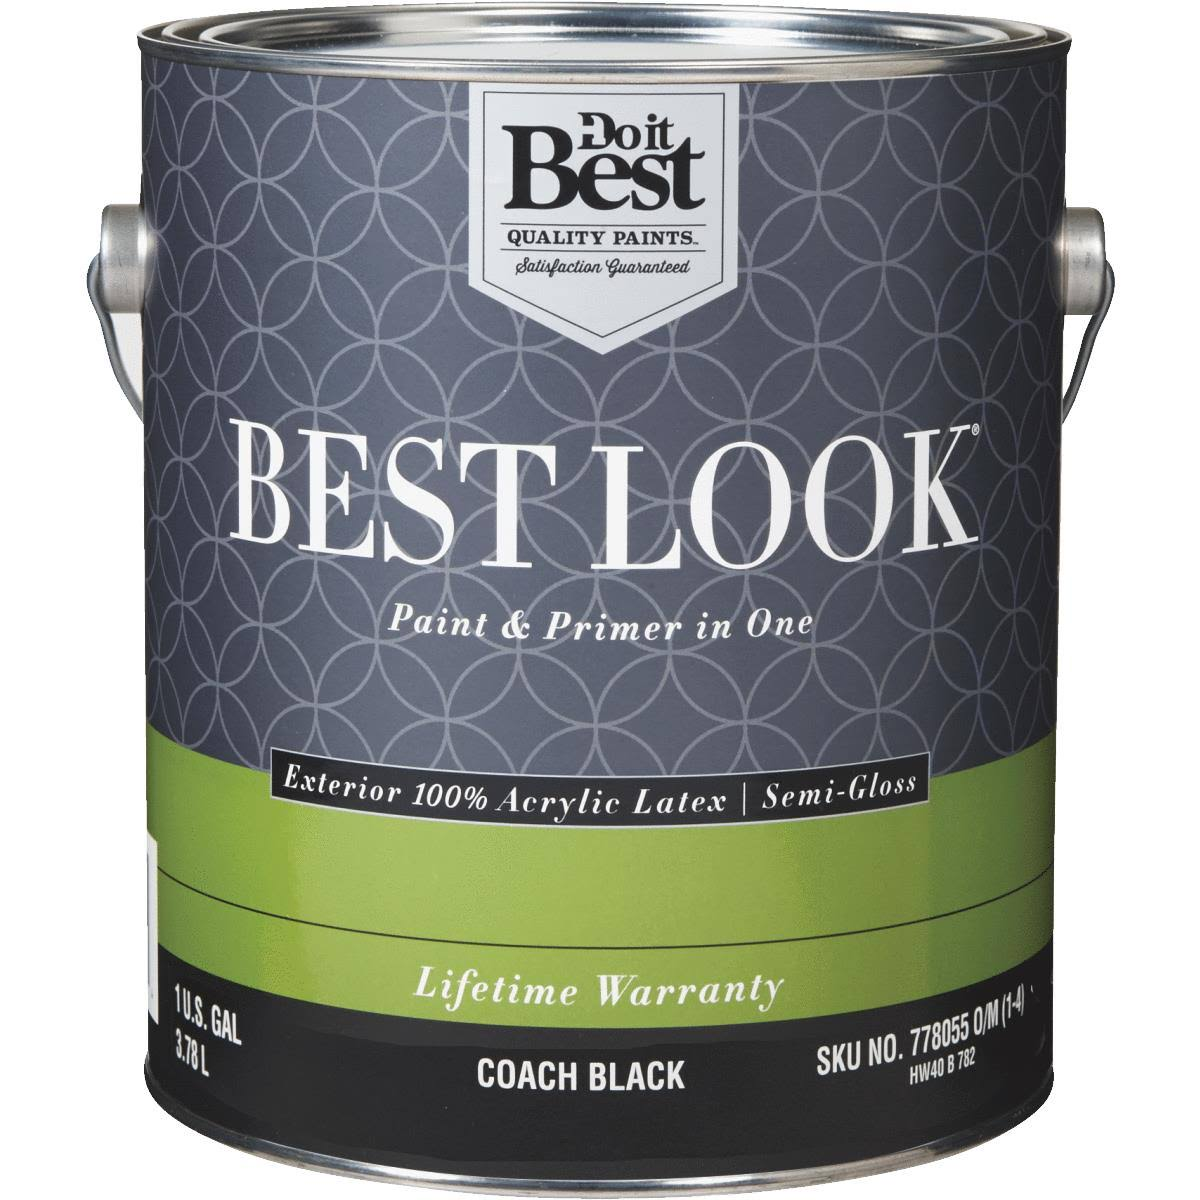 - HW40B0782-16 Best Look 100% Acrylic Latex Paint & Primer in One Semi-Gloss Exterior House Paint